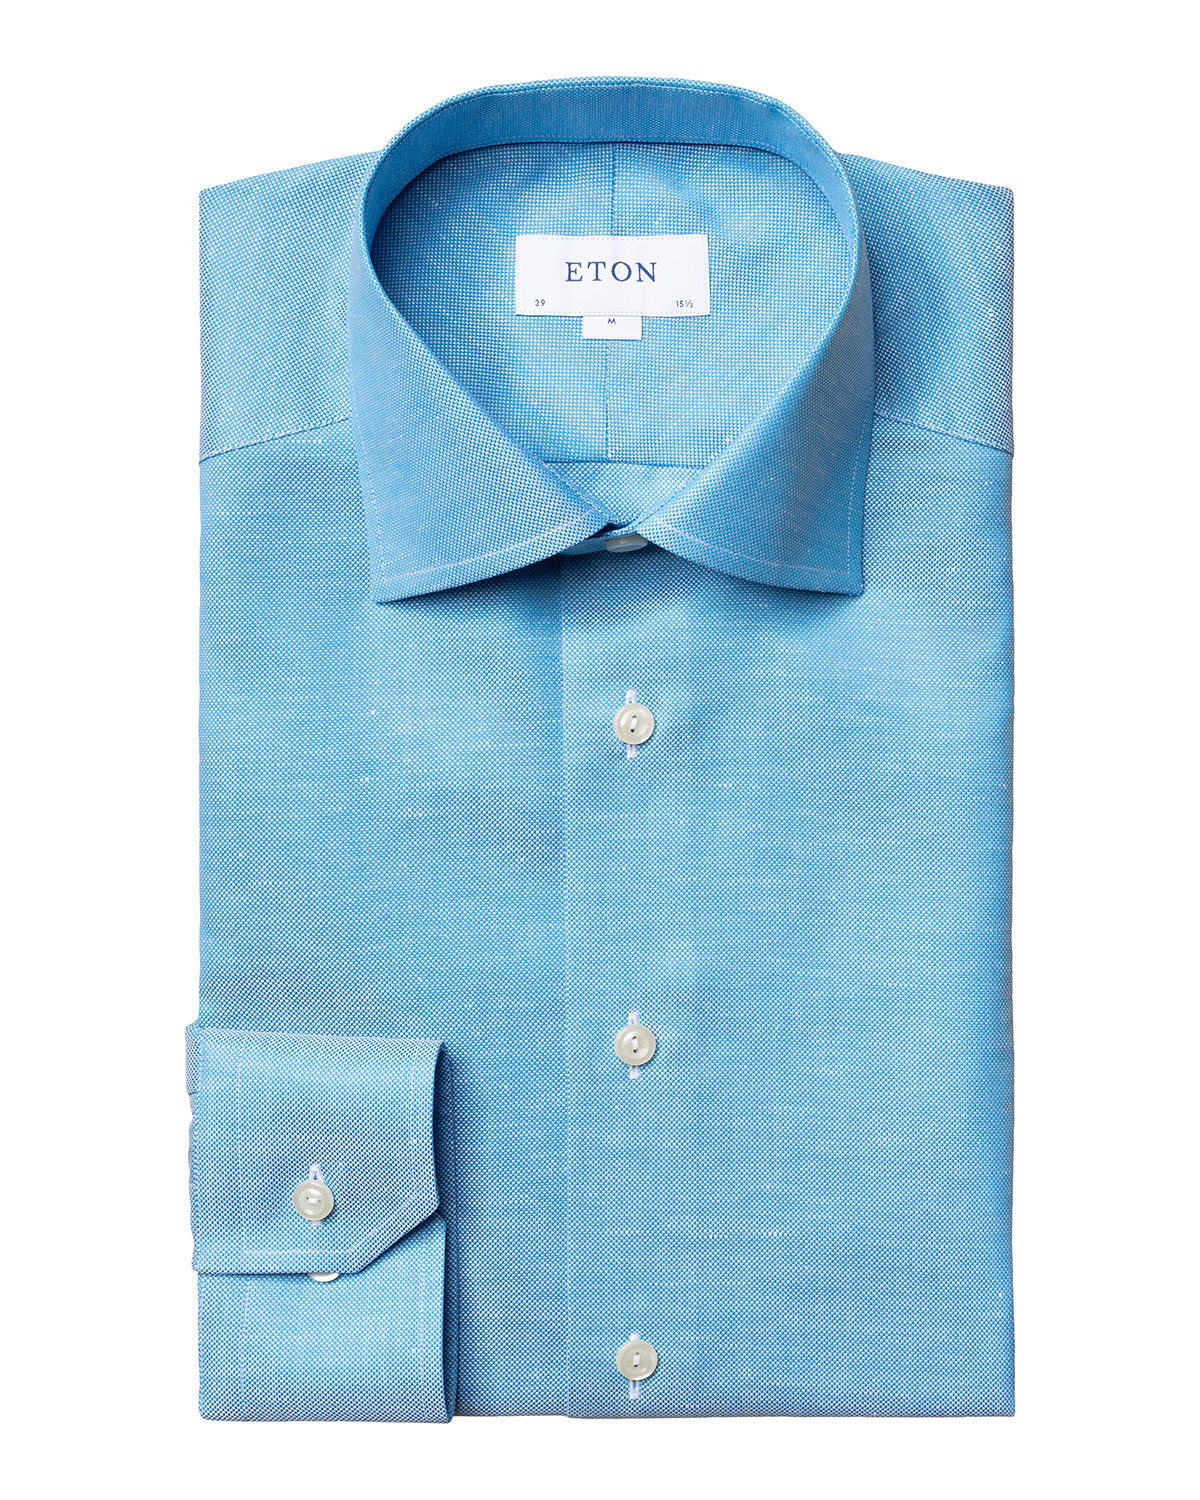 Eton Men's Contemporary-Fit Textured Solid Cotton-Linen Dress Shirt